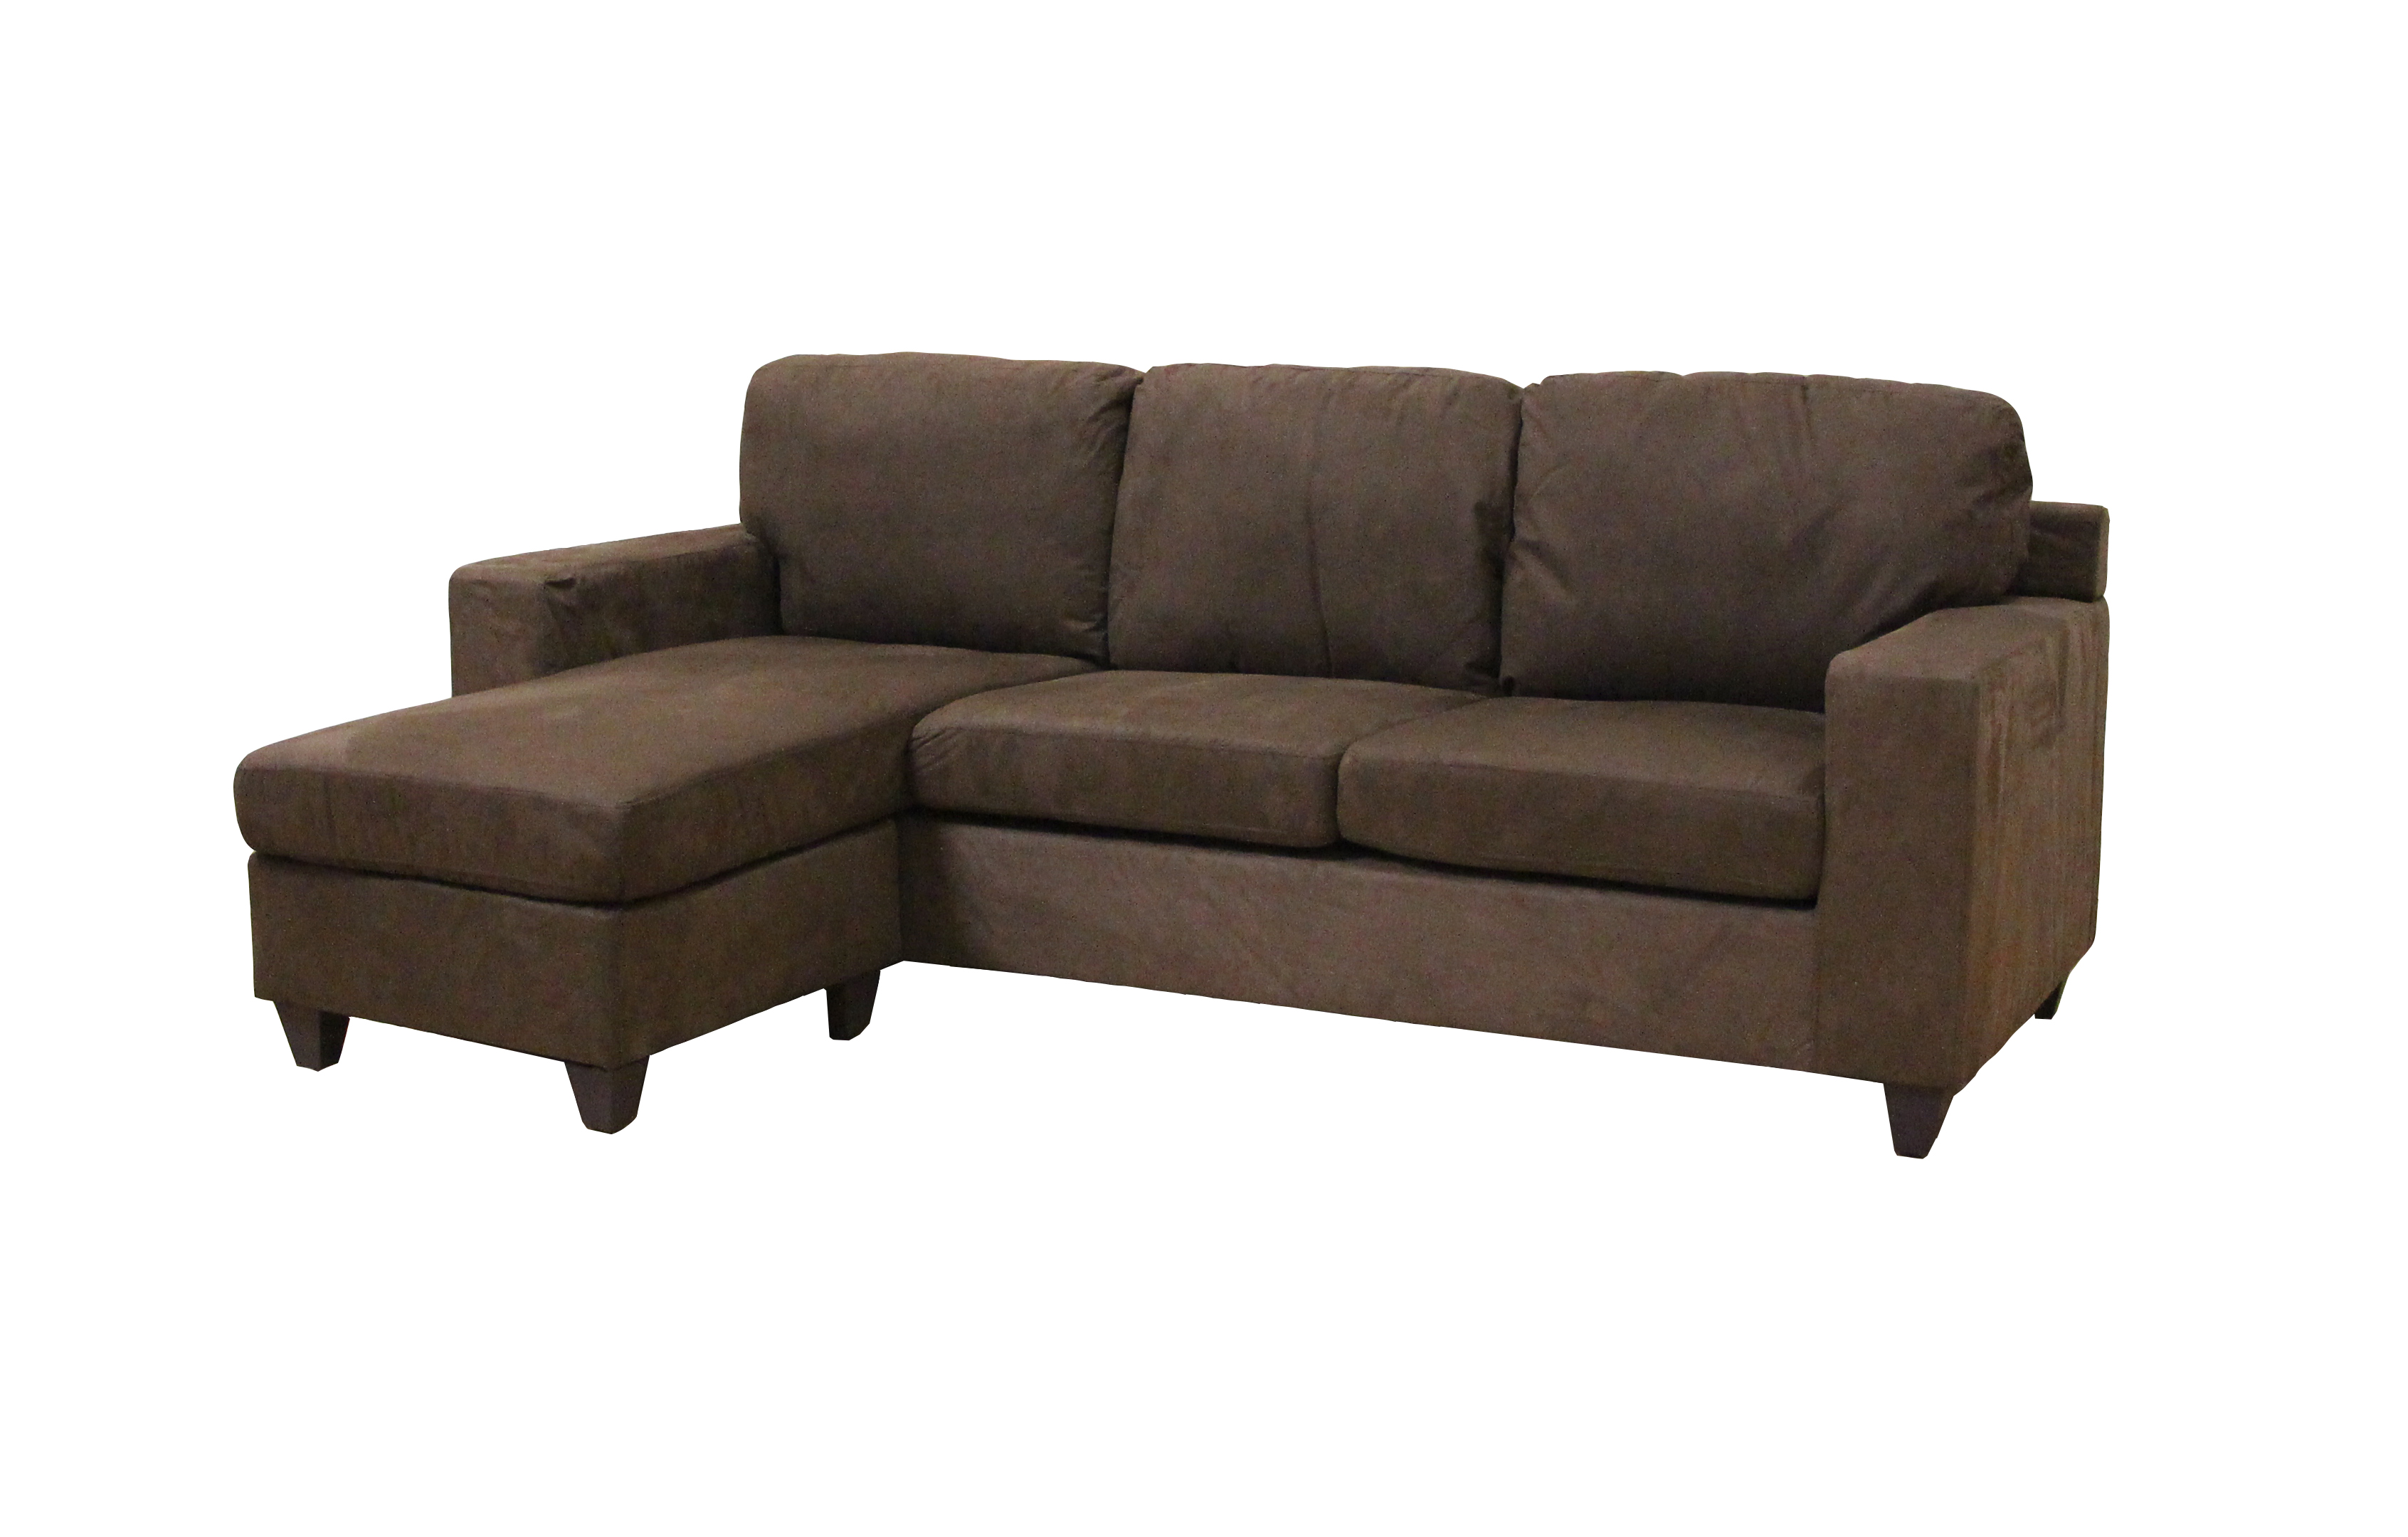 Home Loft Concepts Zild Leather Reversible Sectional With Ottoman    Walmart.com